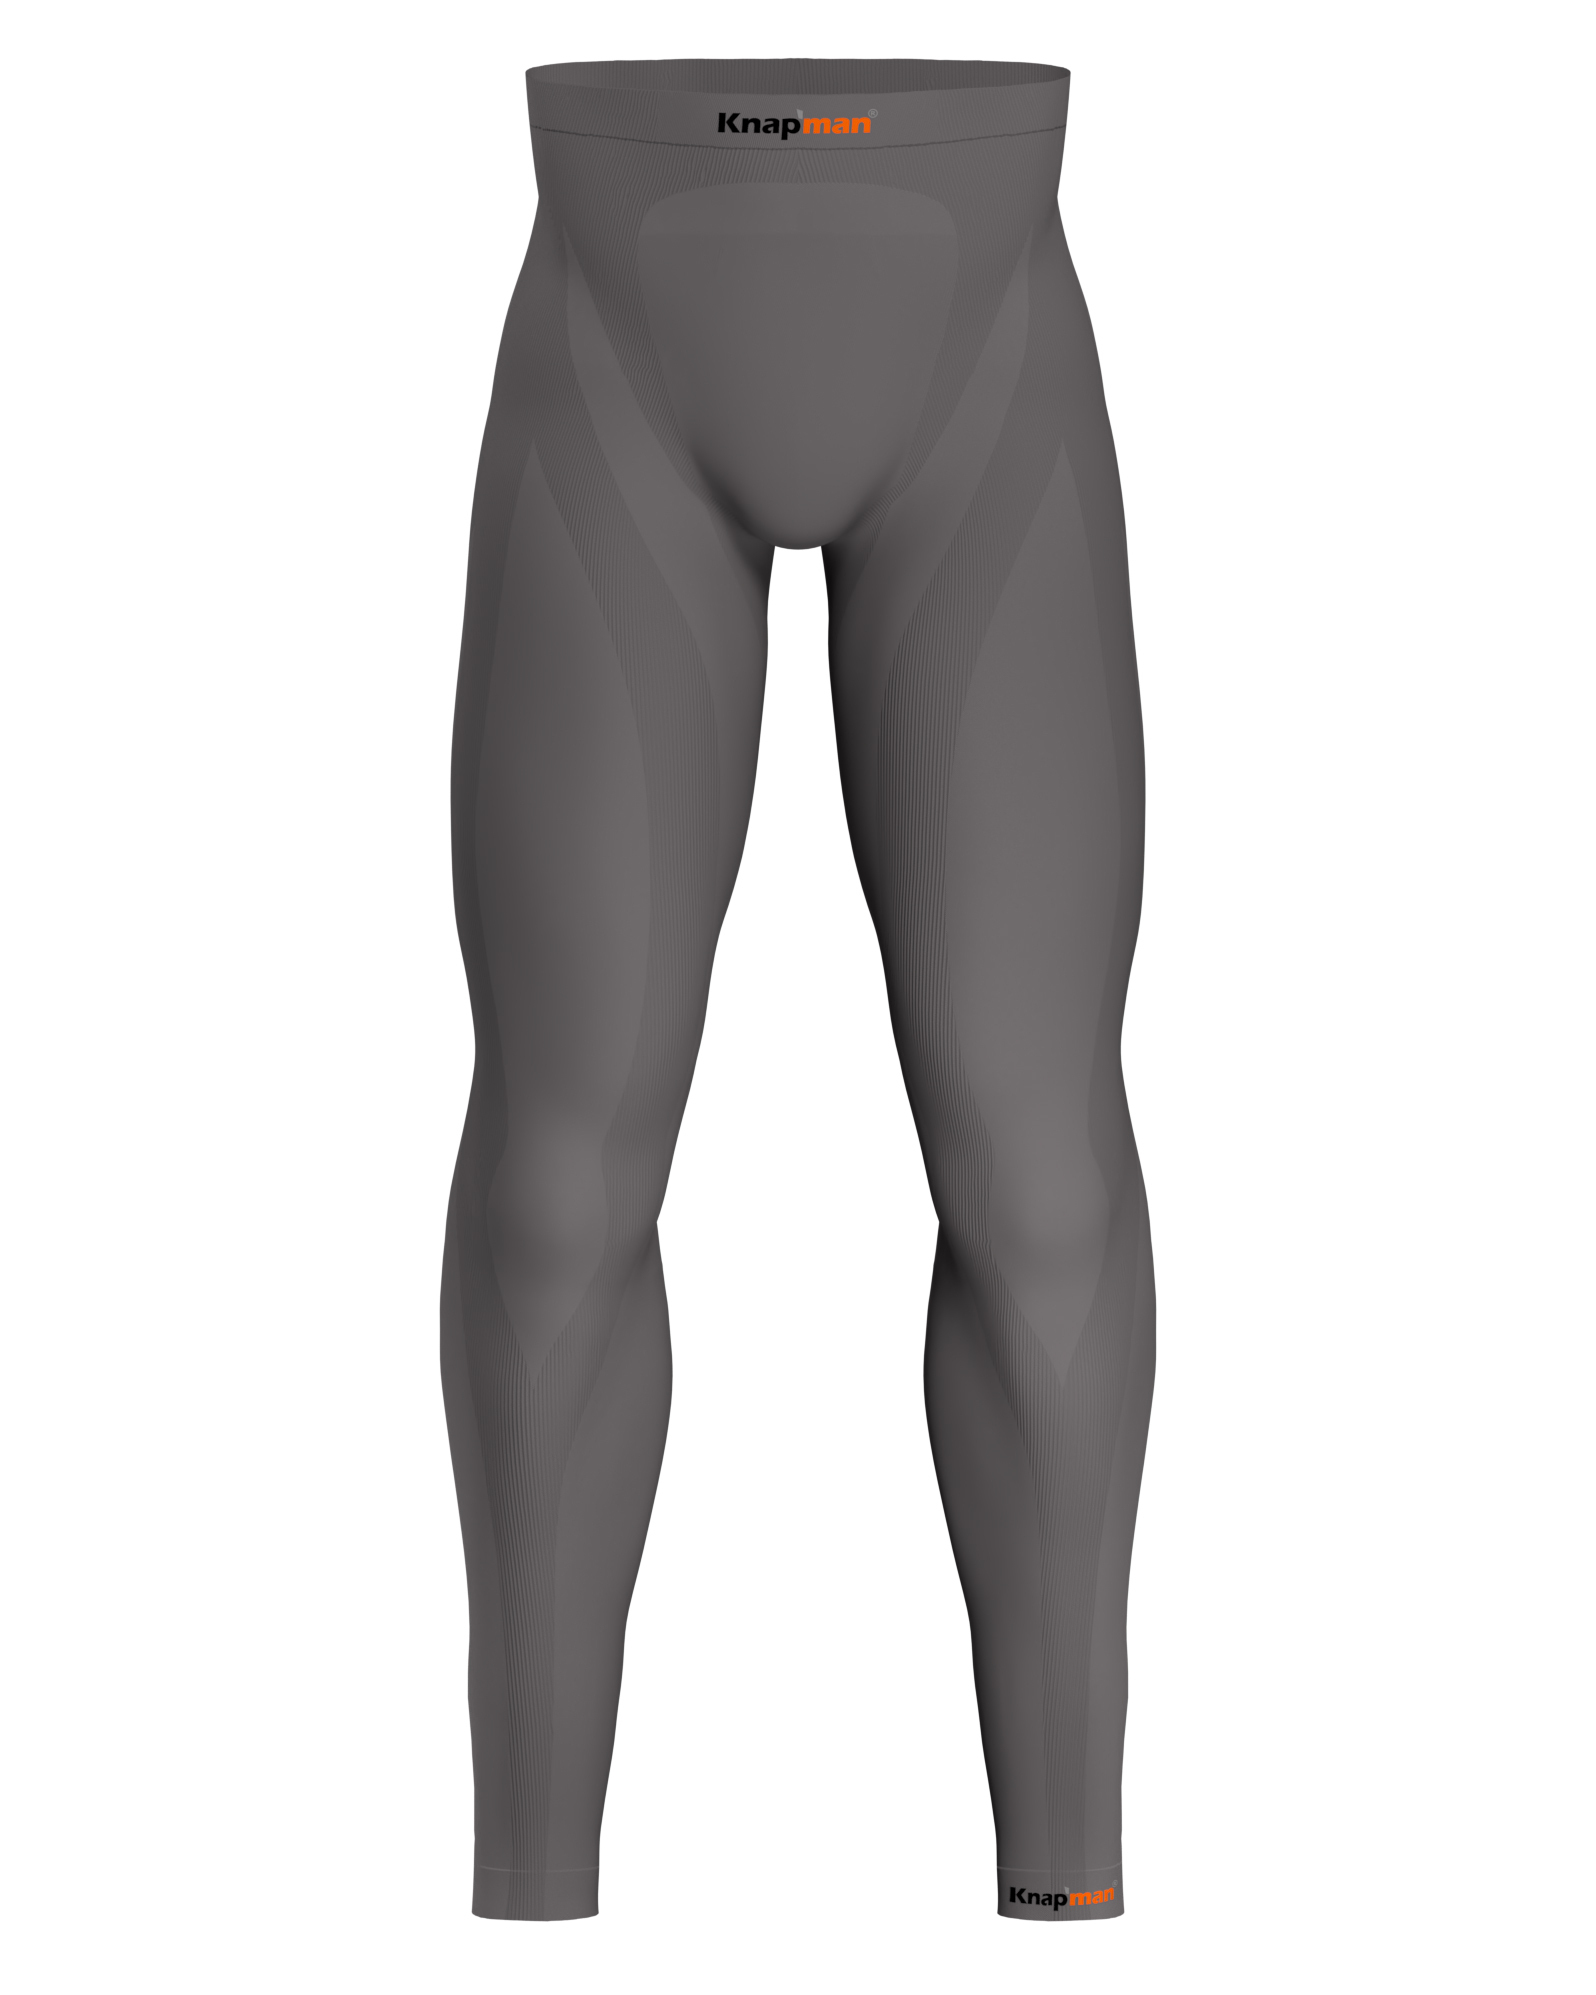 Knap'man Zoned Compression Pants Long USP 45% Grijs